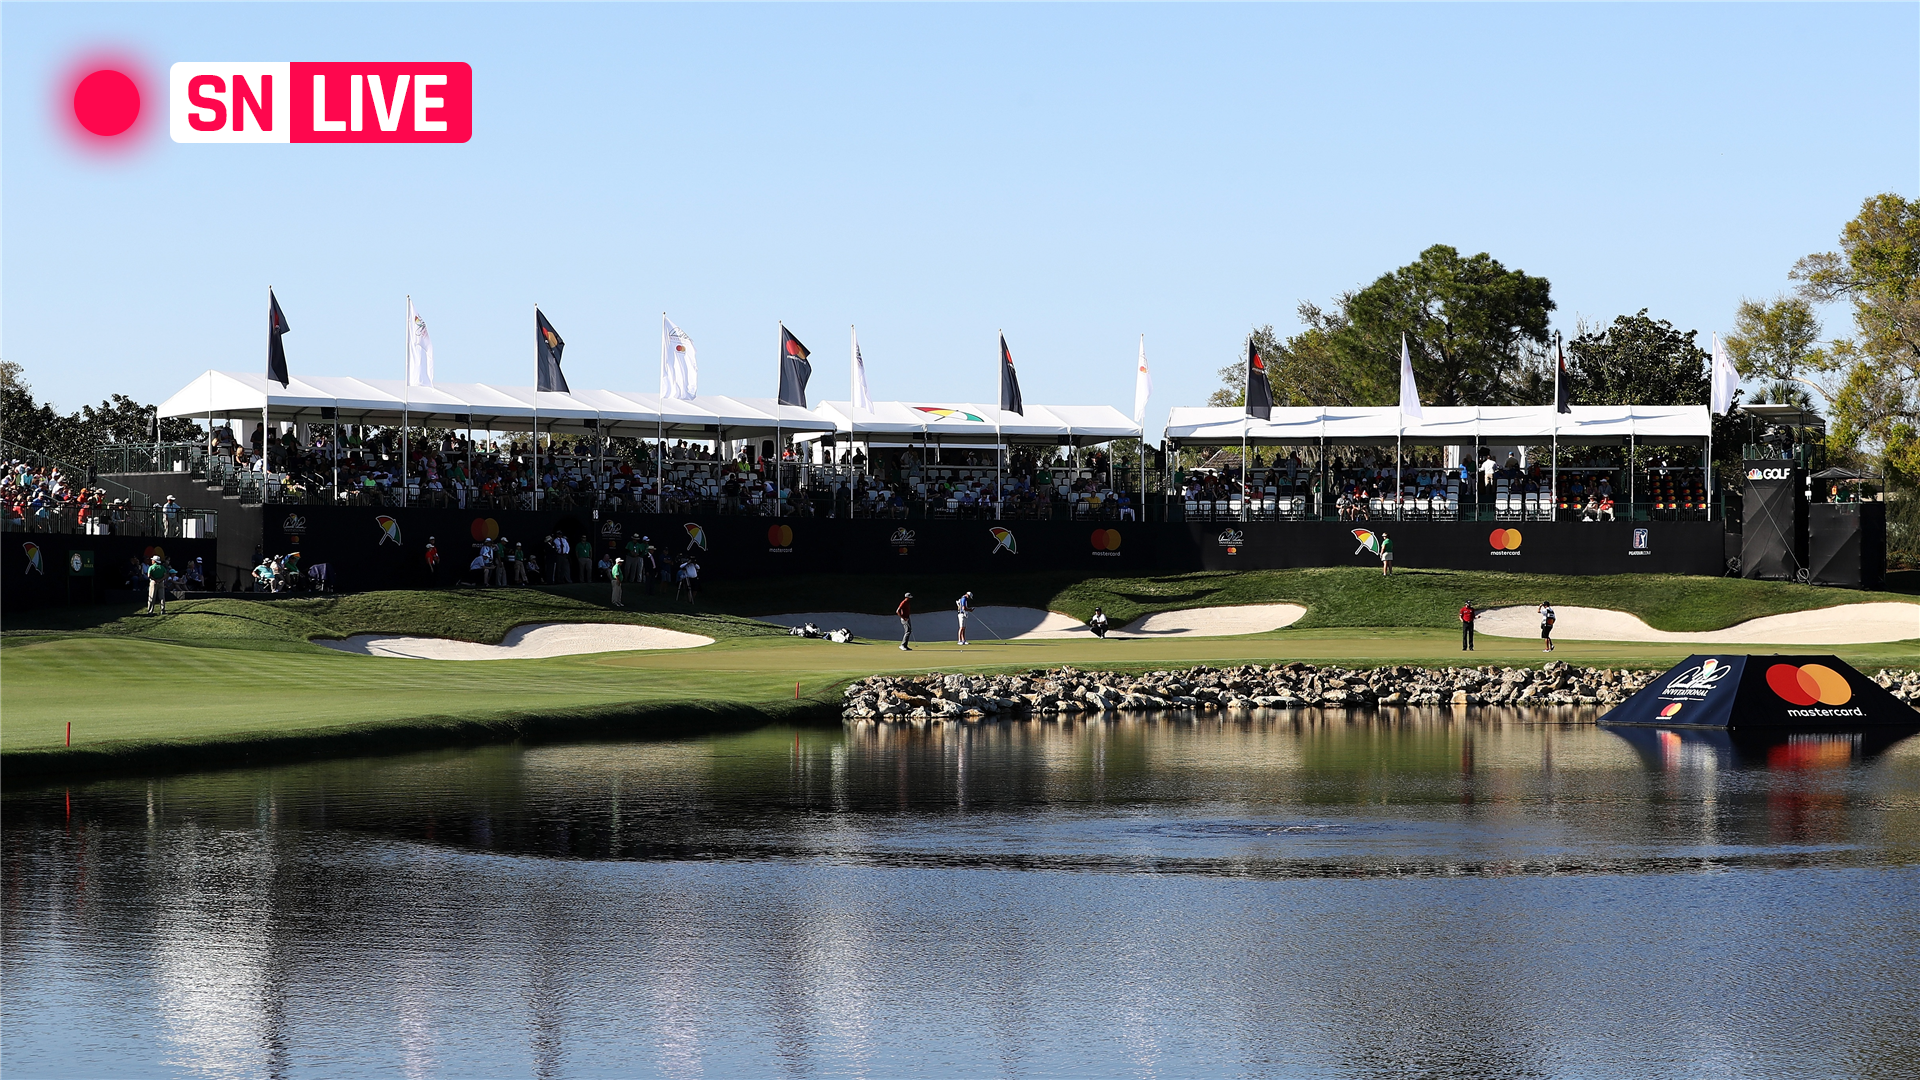 Arnold Palmer Invitational leaderboard: Final results from 2019 tournament | Sporting News